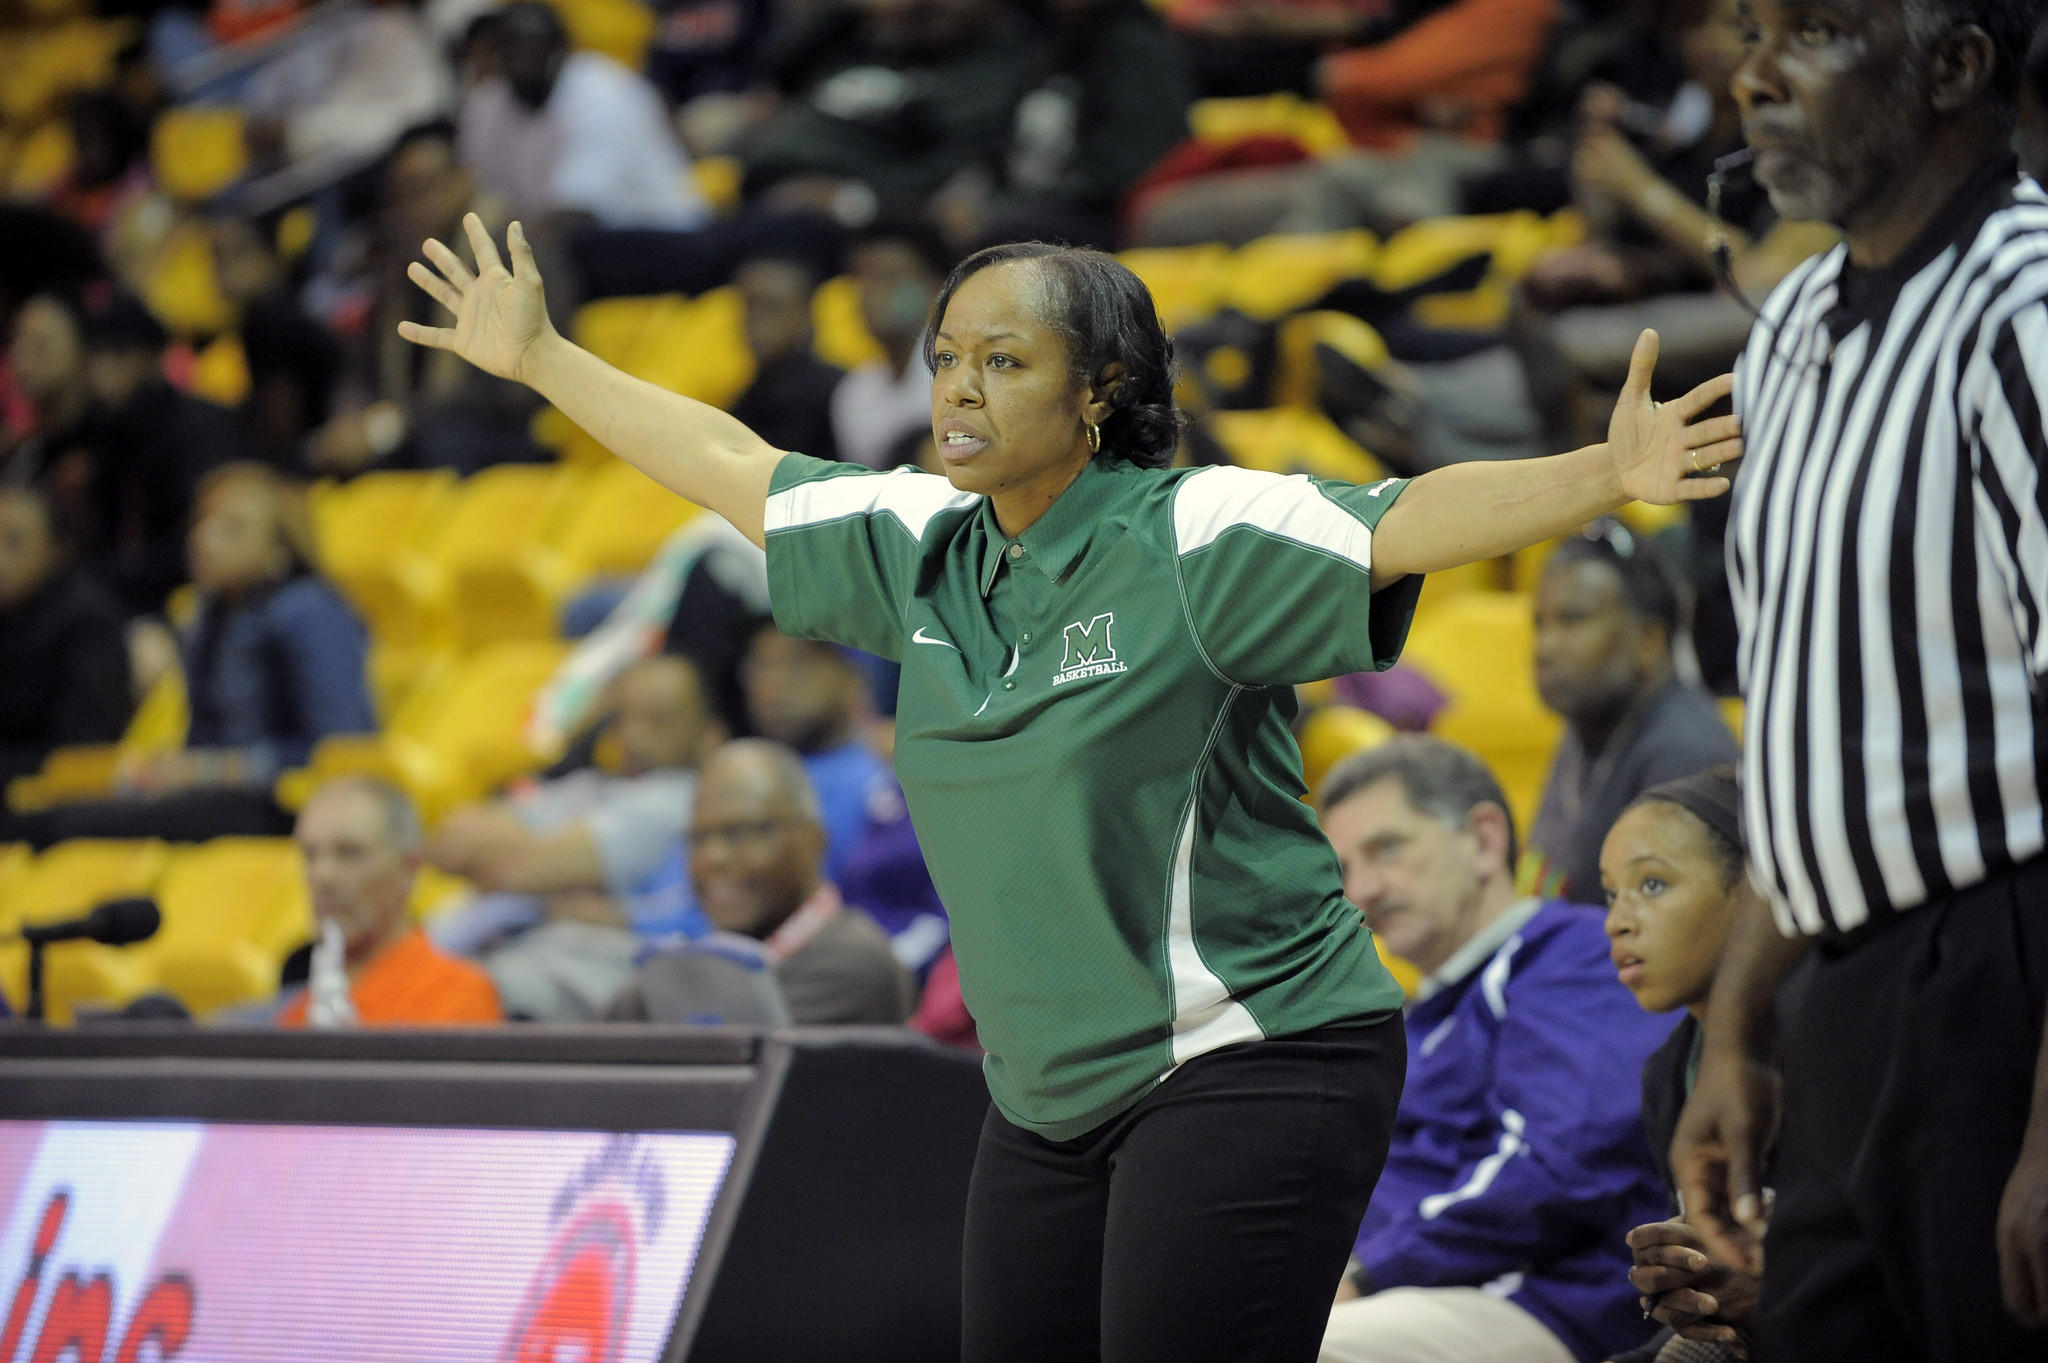 DeToiya McAliley coaches her team during the state semifinals.